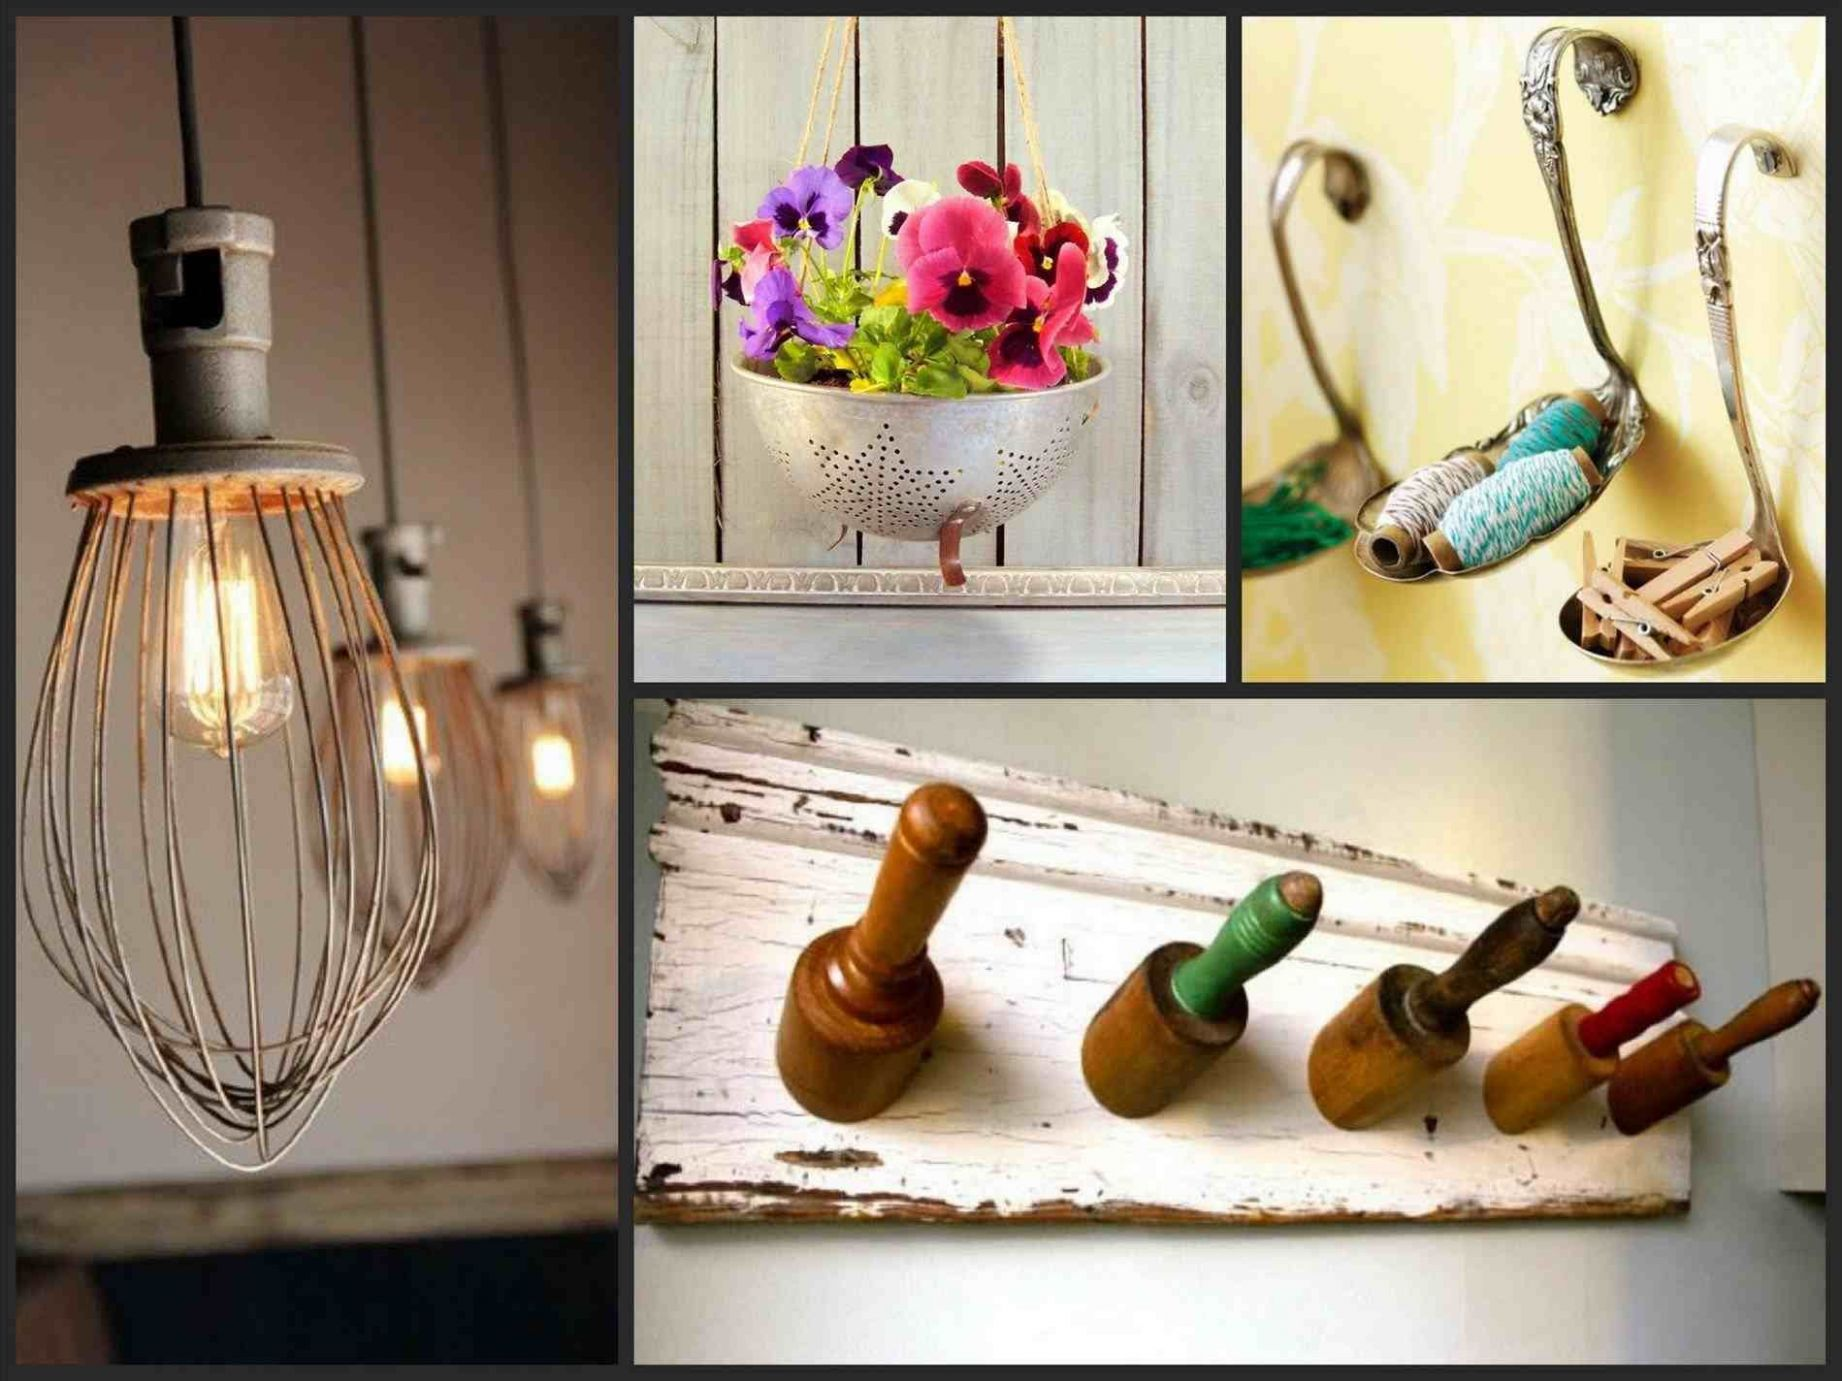 The Images Collection of Craft siudynet art home decoration ideas ..